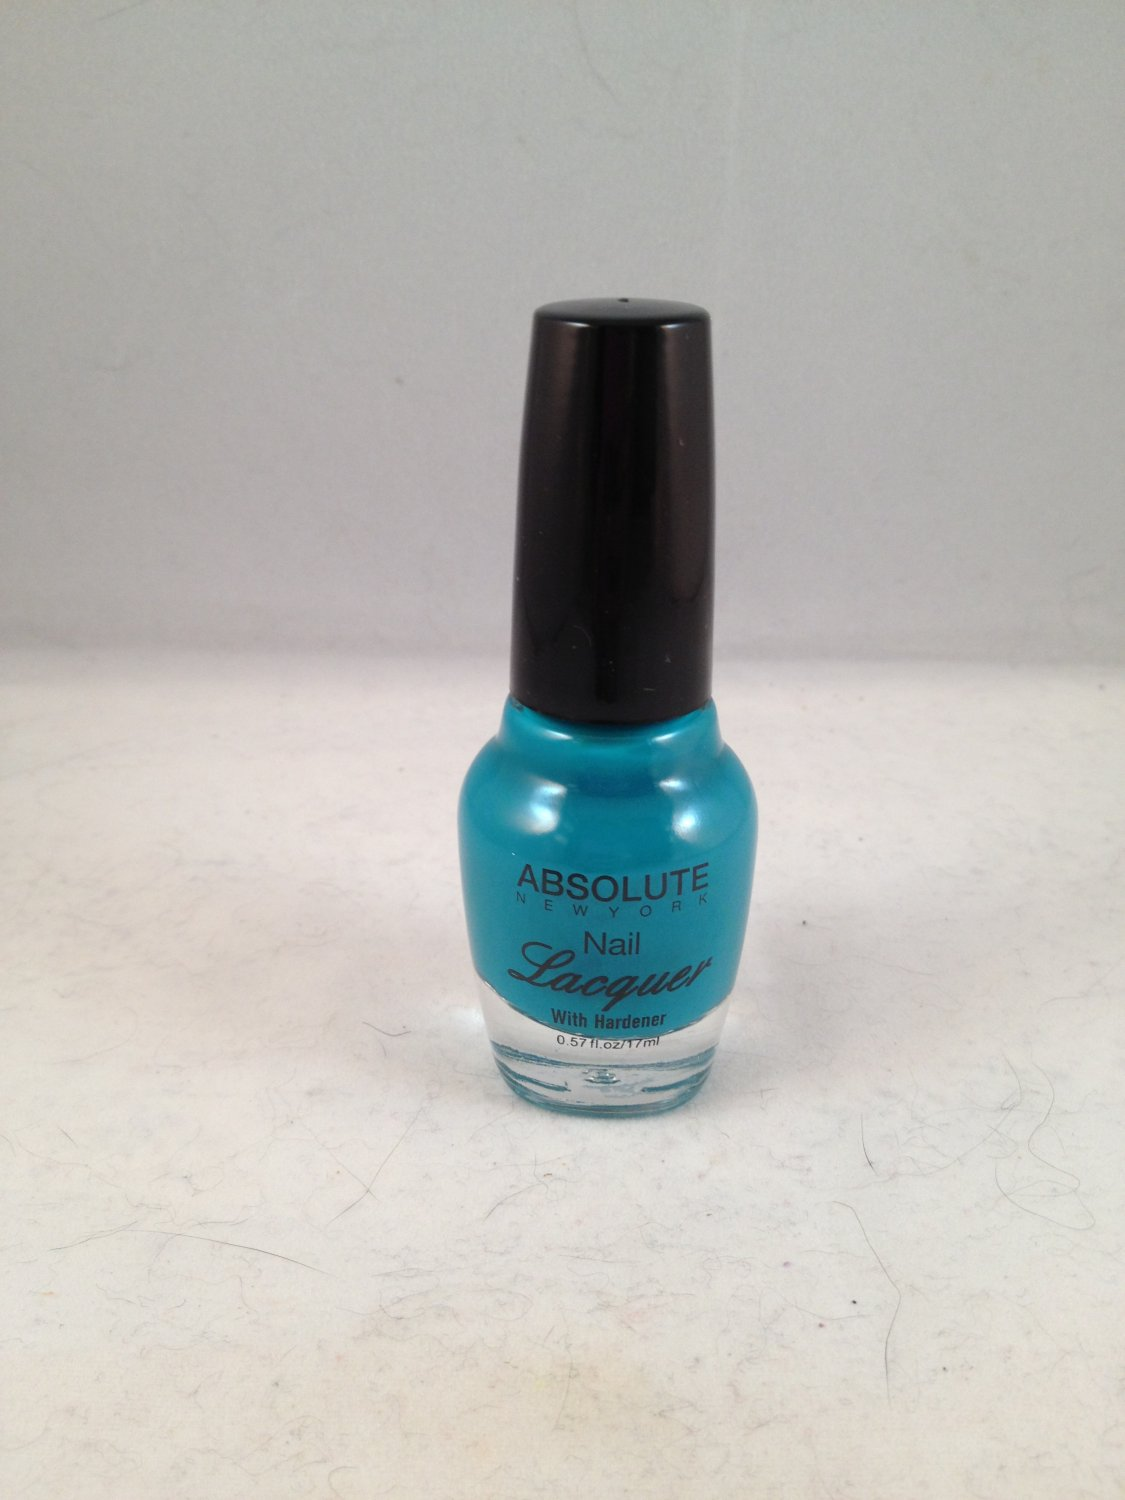 Absolute New York Nail Lacquer with hardener NFB16 Tourquoise color polish turquoise